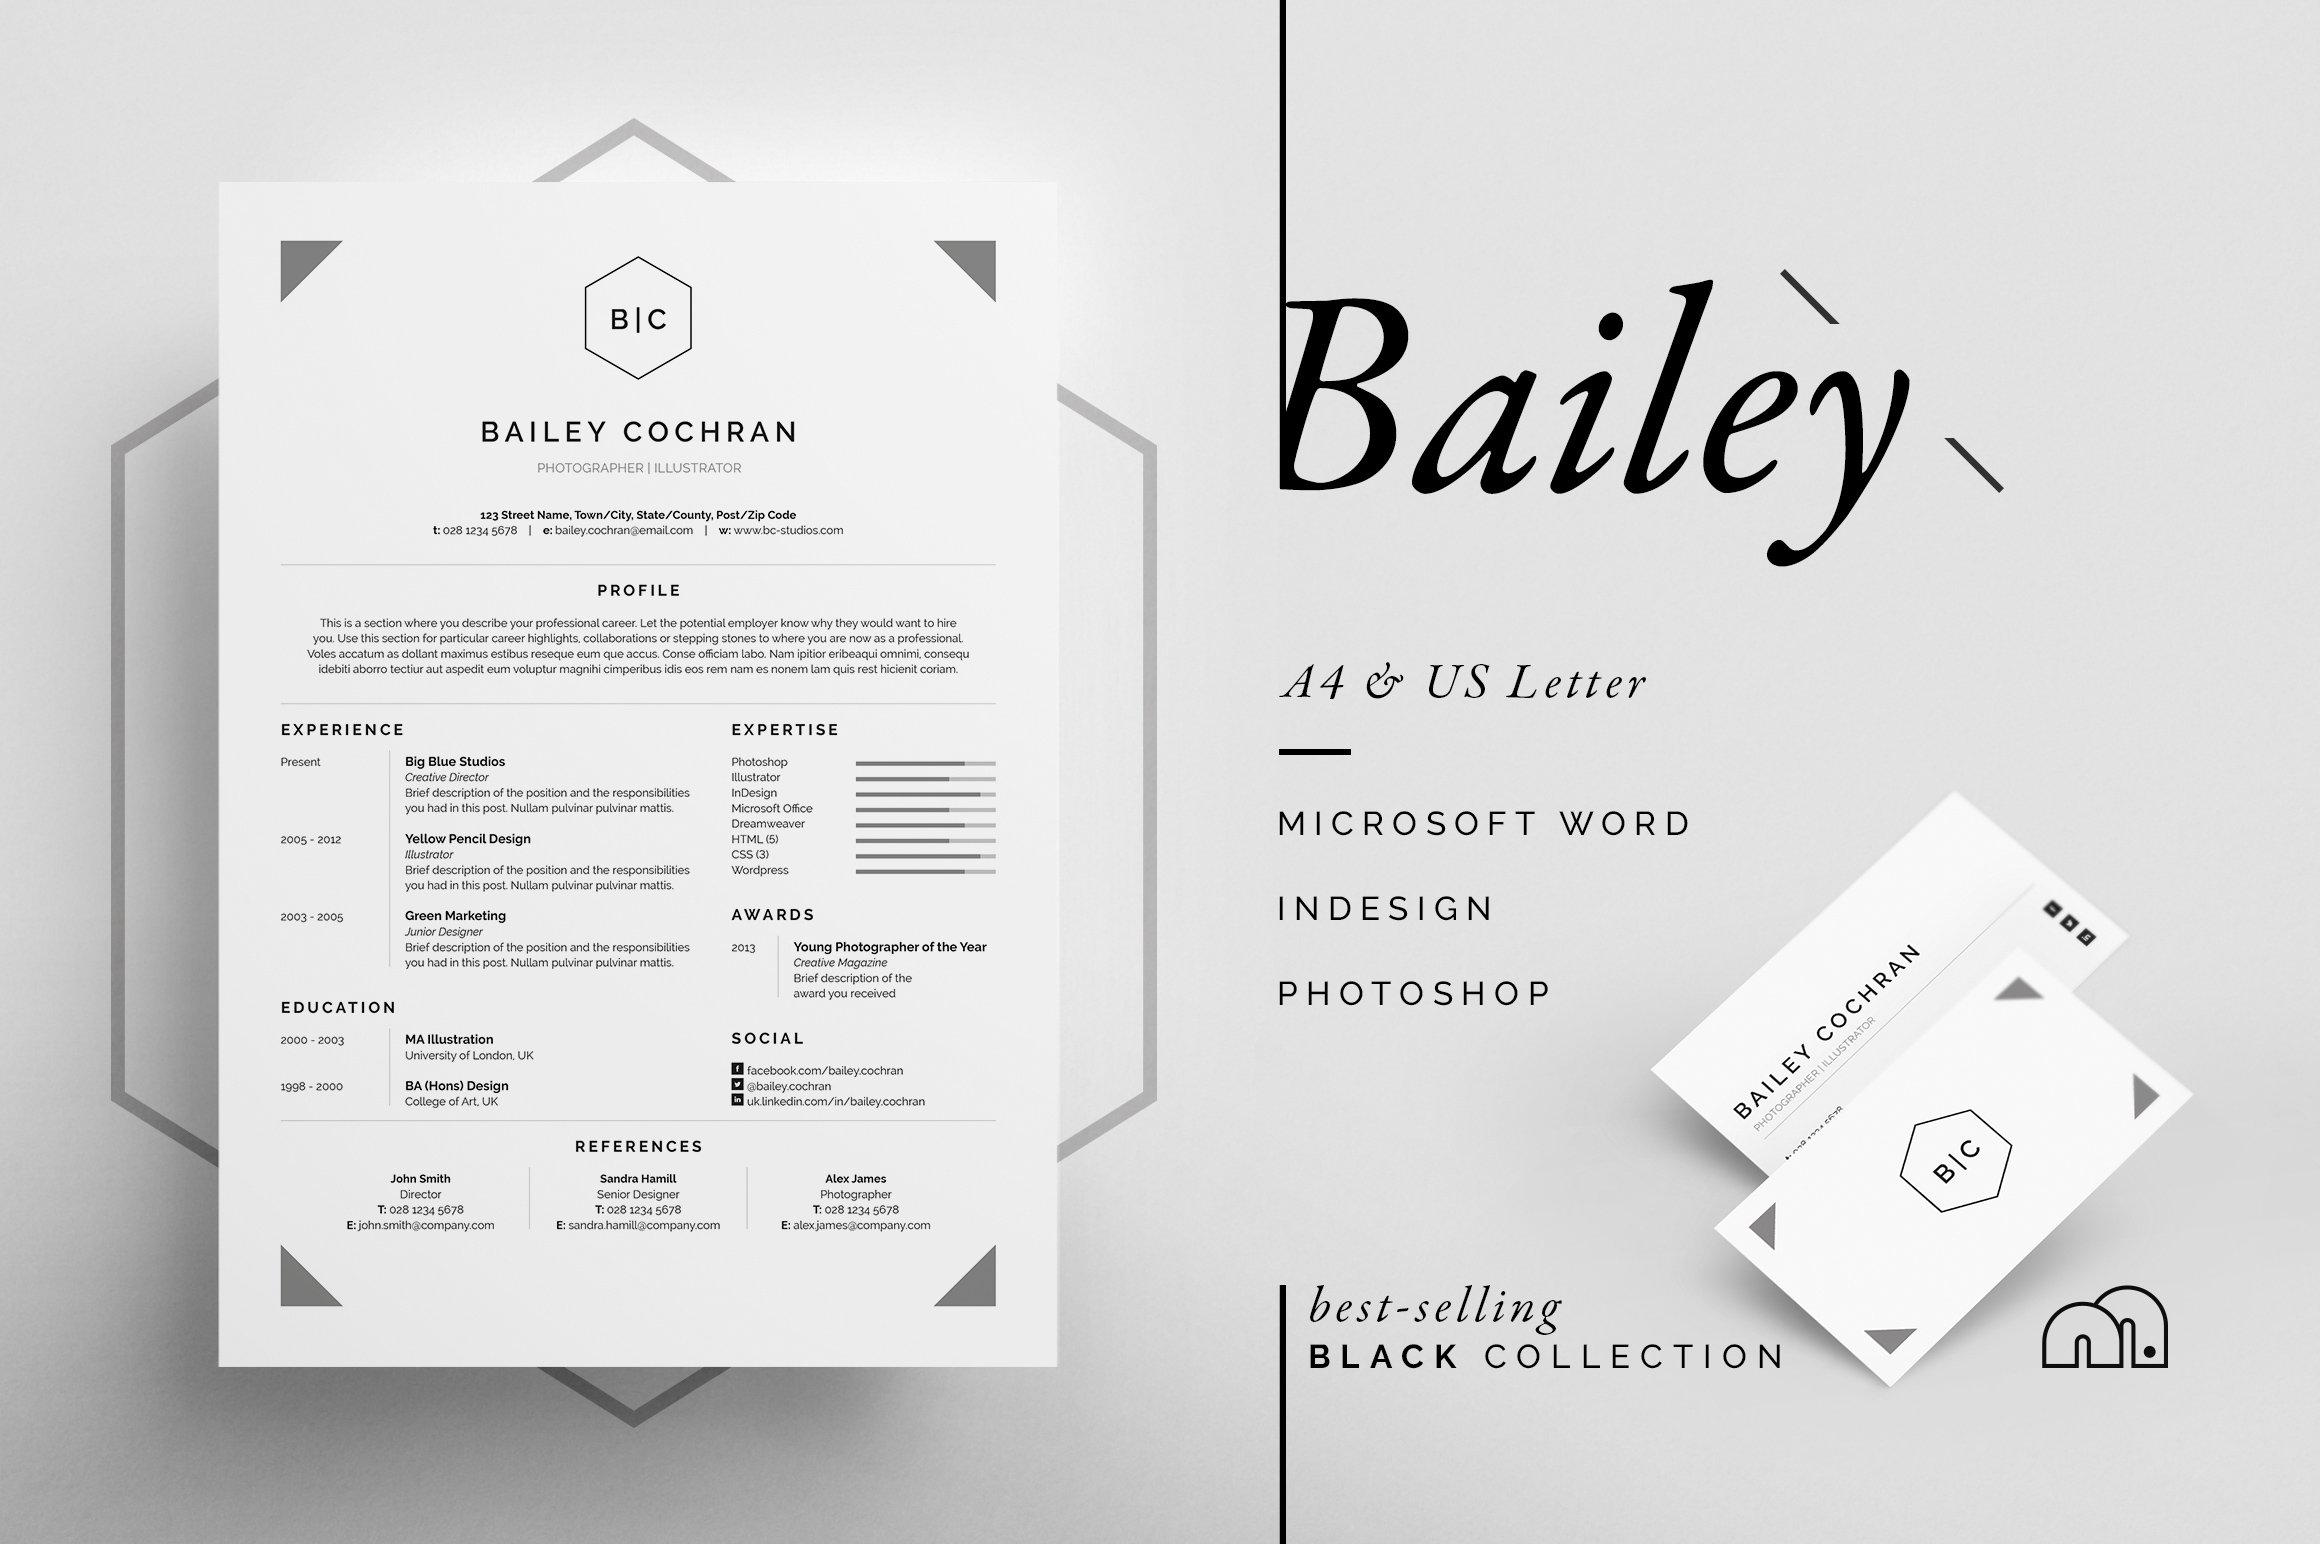 Resume Outline Free  Creative Resume Templates You Wont Believe Are Microsoft Word  Waiter Resume Skills Excel with Sample Resume Summary Statements Word Resumecv  Bailey How To Create A Resume On Word Excel